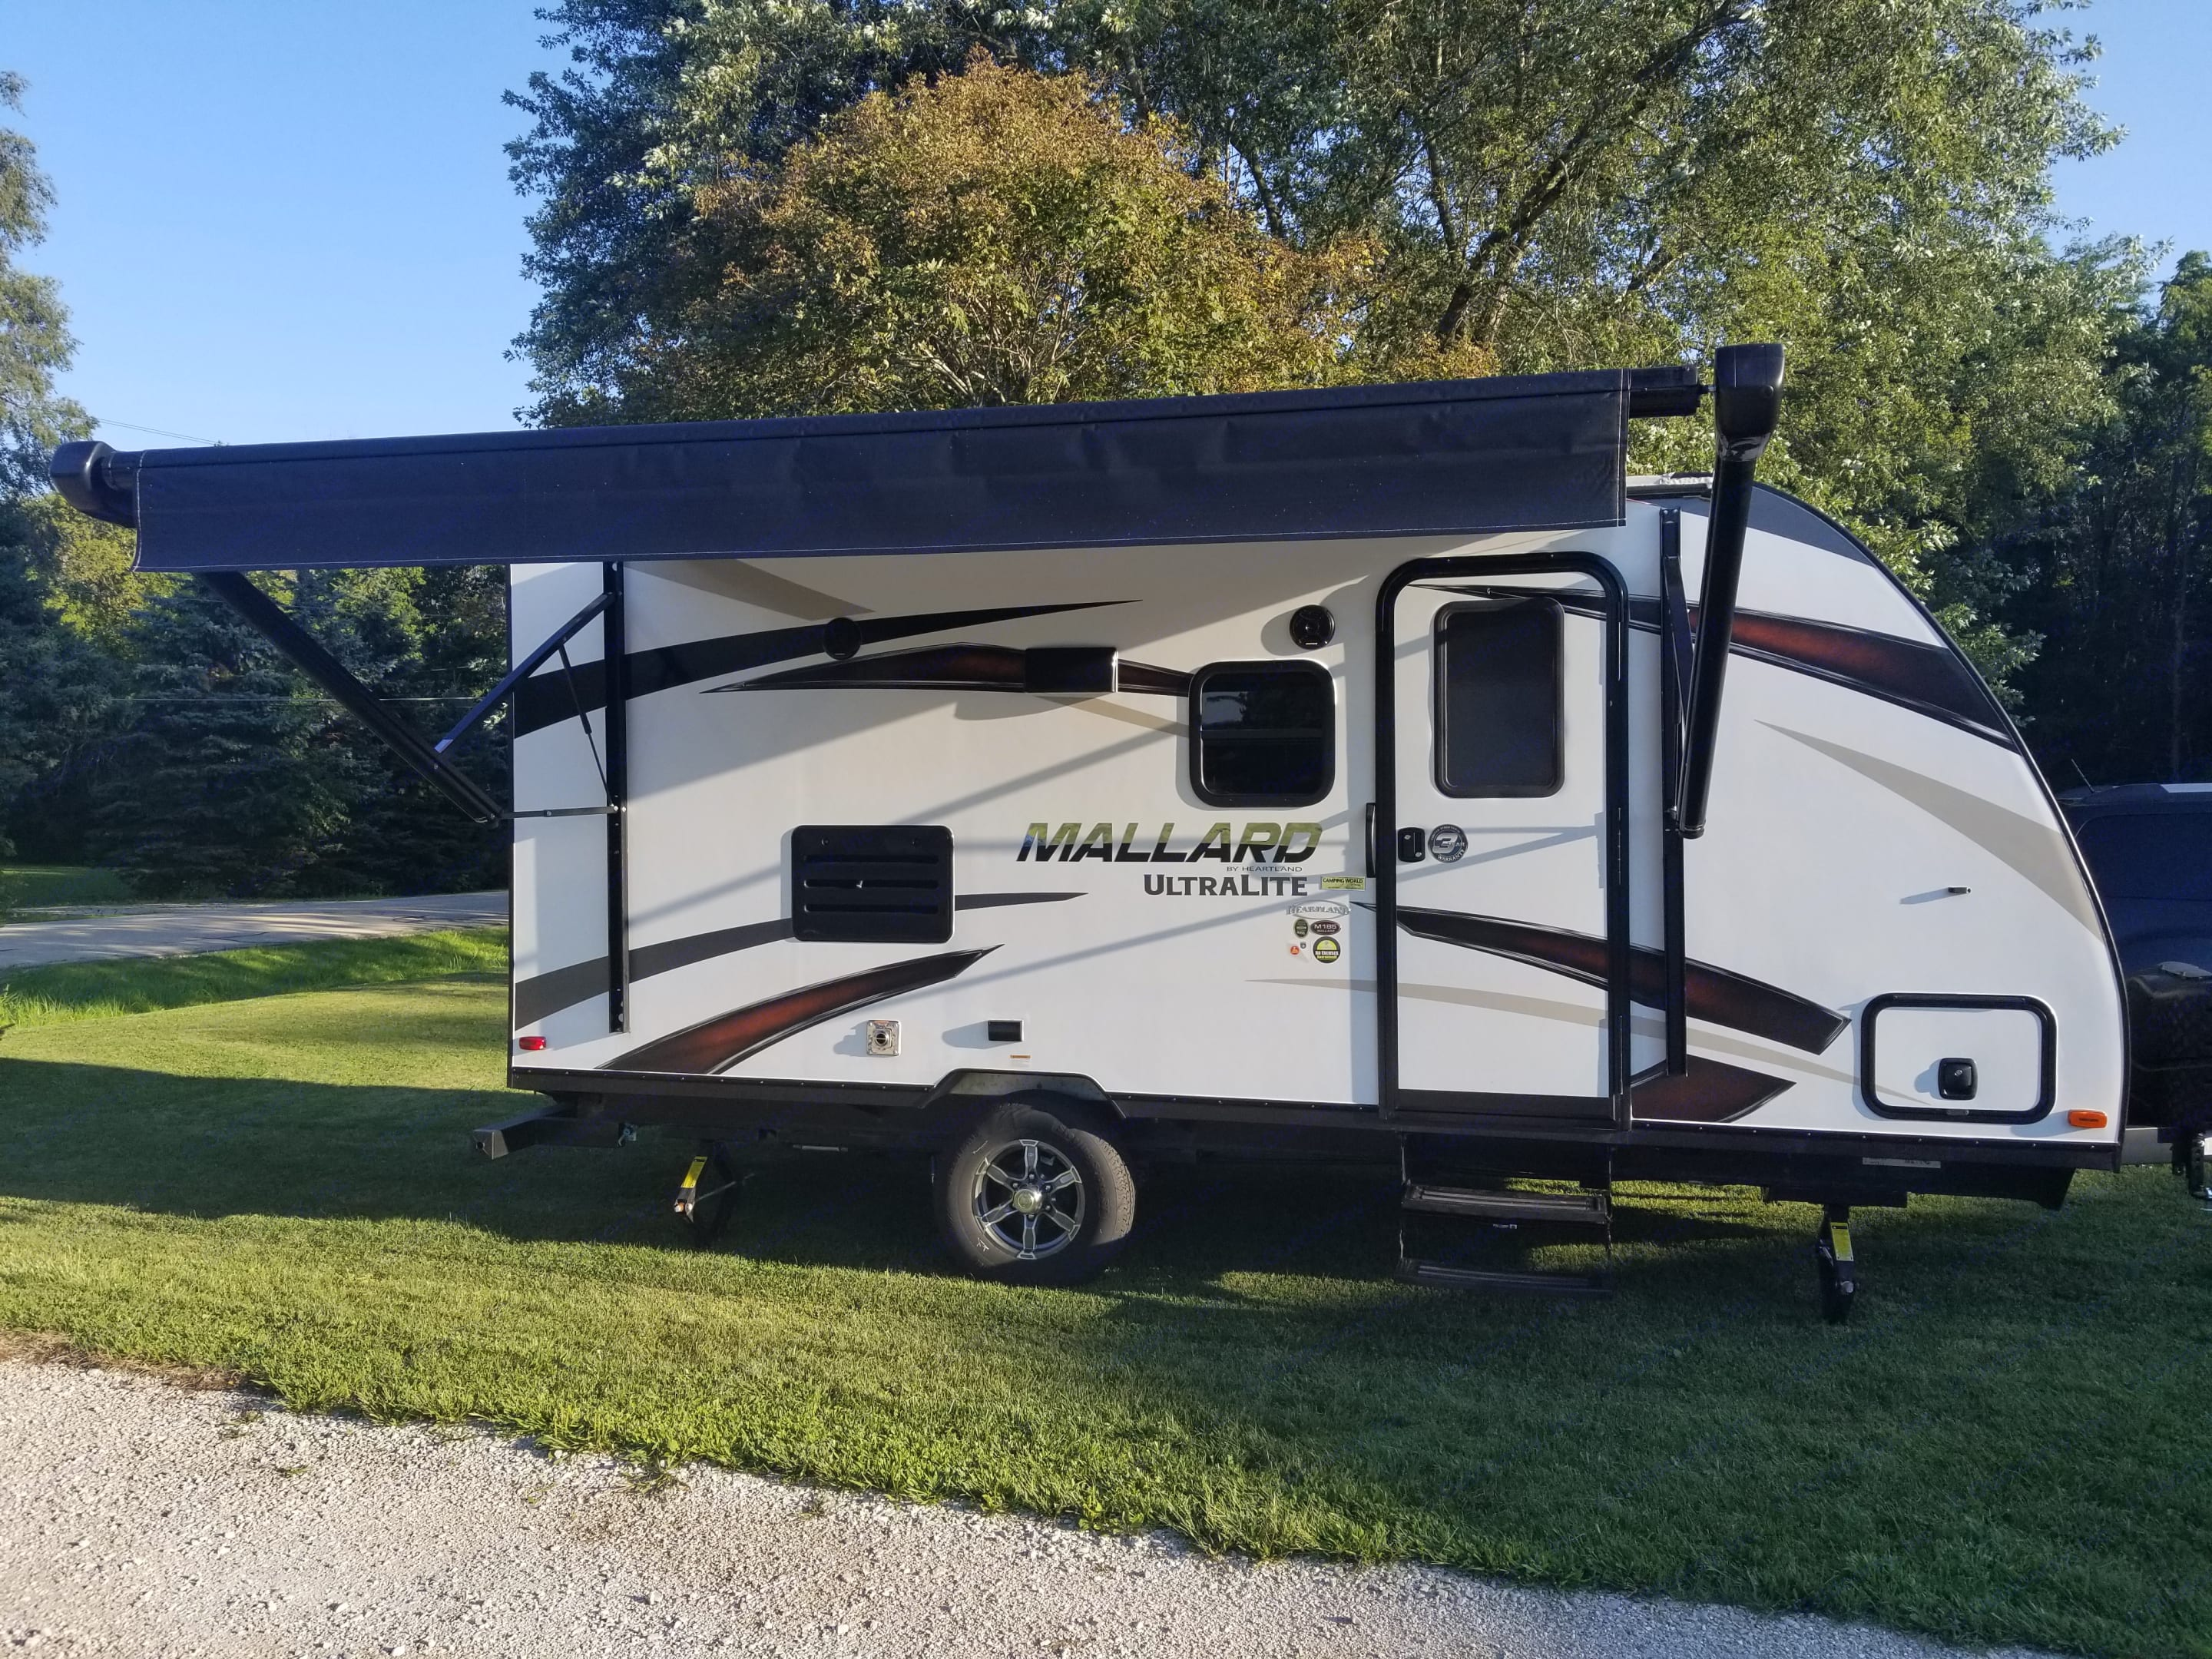 Right Outside with Awning Out. Heartland M185 2018